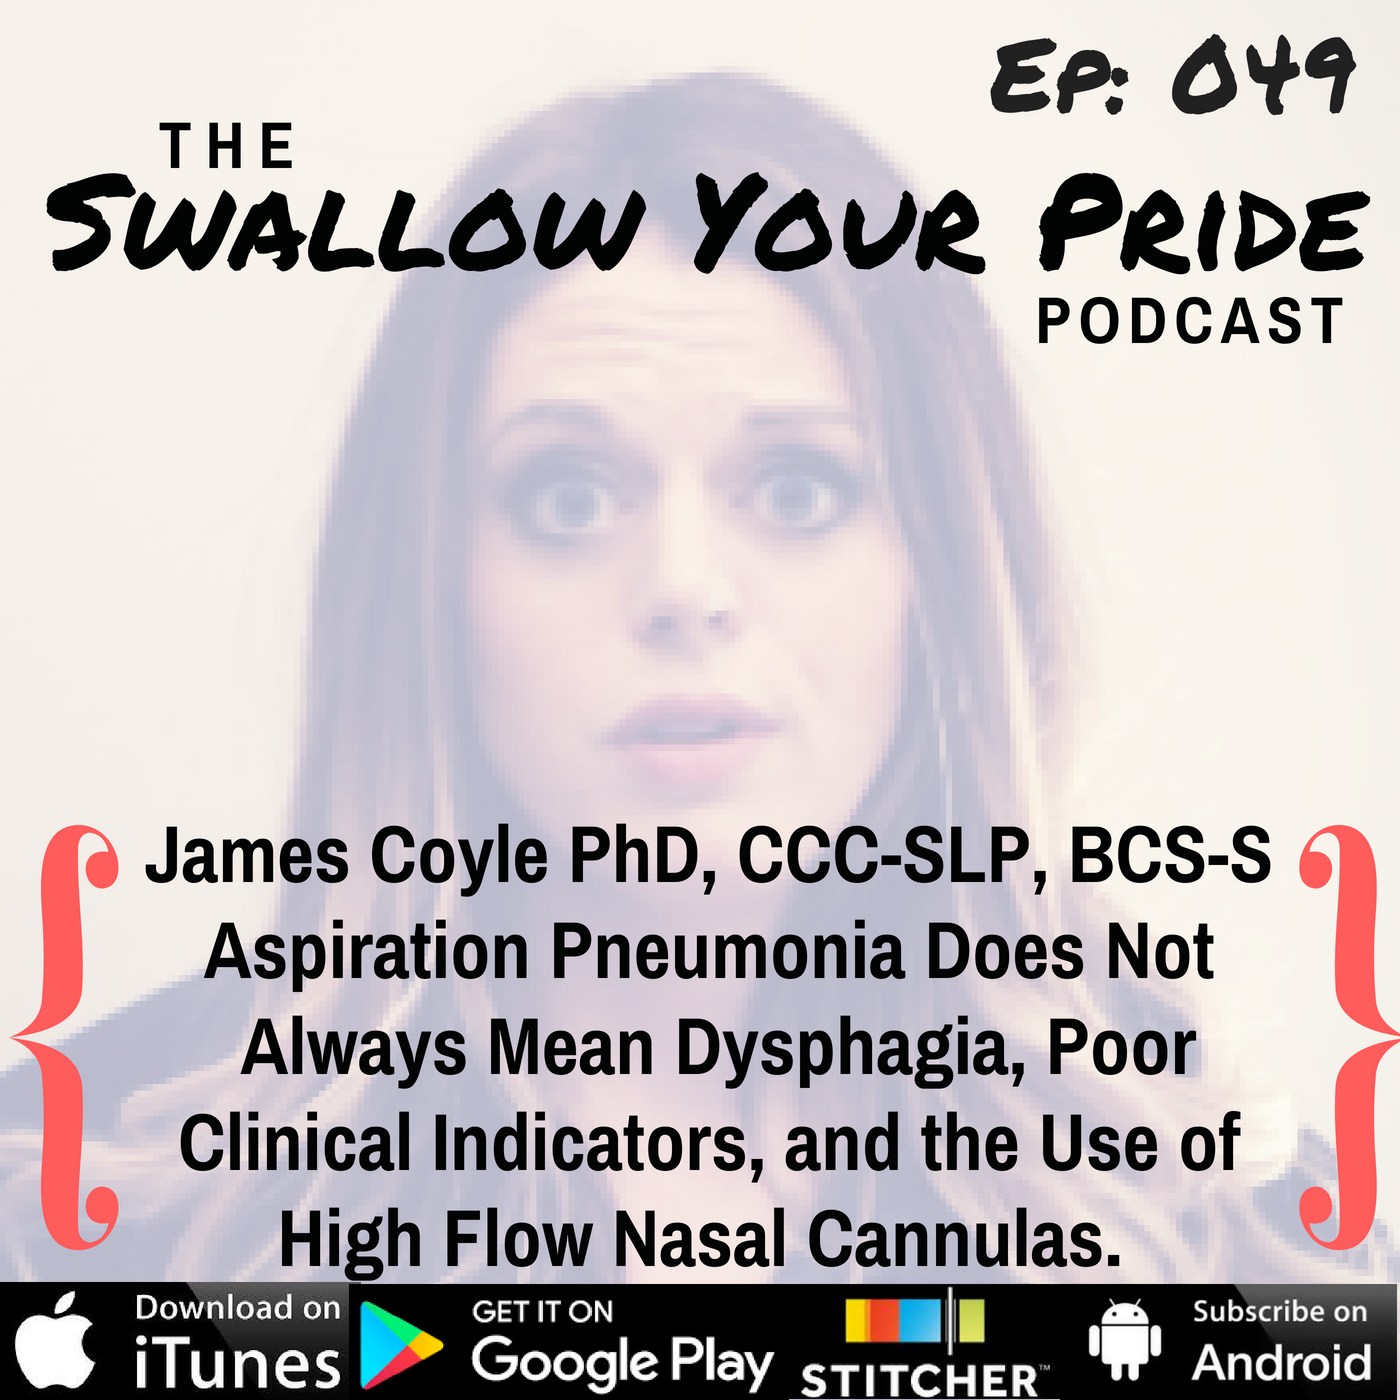 049 – James Coyle PhD, CCC-SLP, BCS-S, ASHA Fellow – Aspiration Pneumonia Does Not Always Mean Dysphagia, Poor Clinical Indicators, and the Use of High Flow Nasal Cannulas